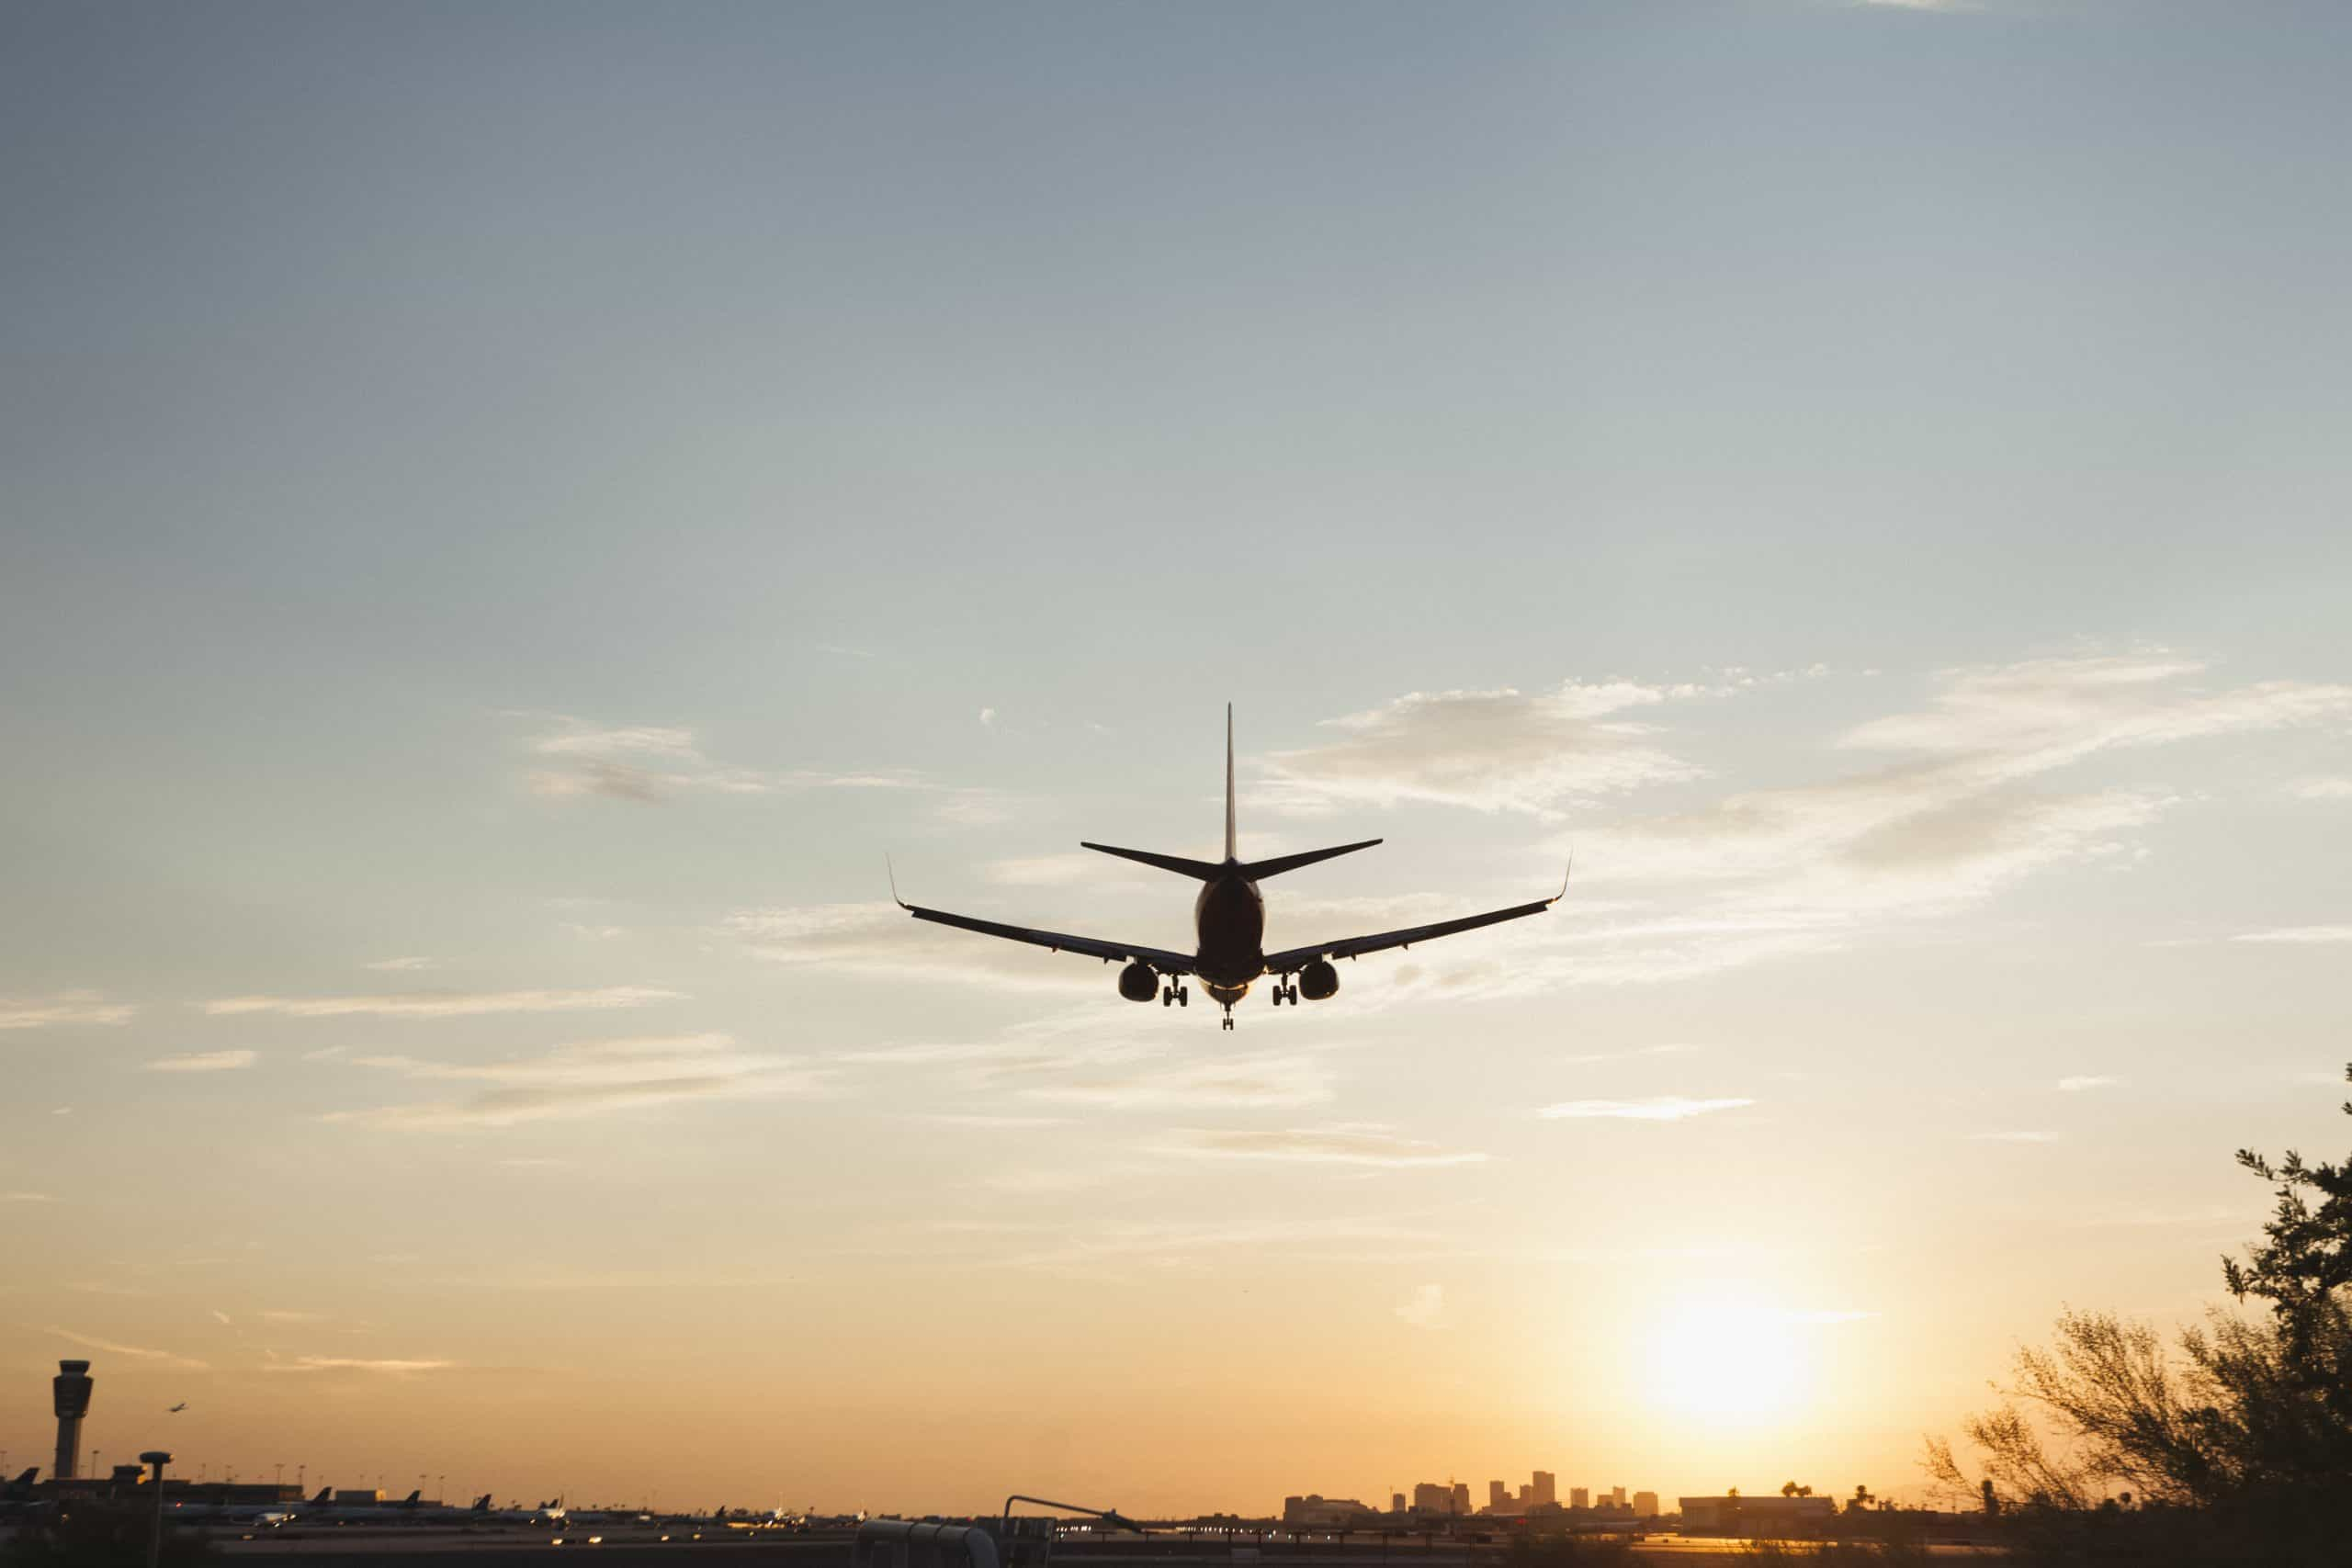 Travel hacks - Plane flying into Phoenix Sky Harbor Airport with sun setting in background